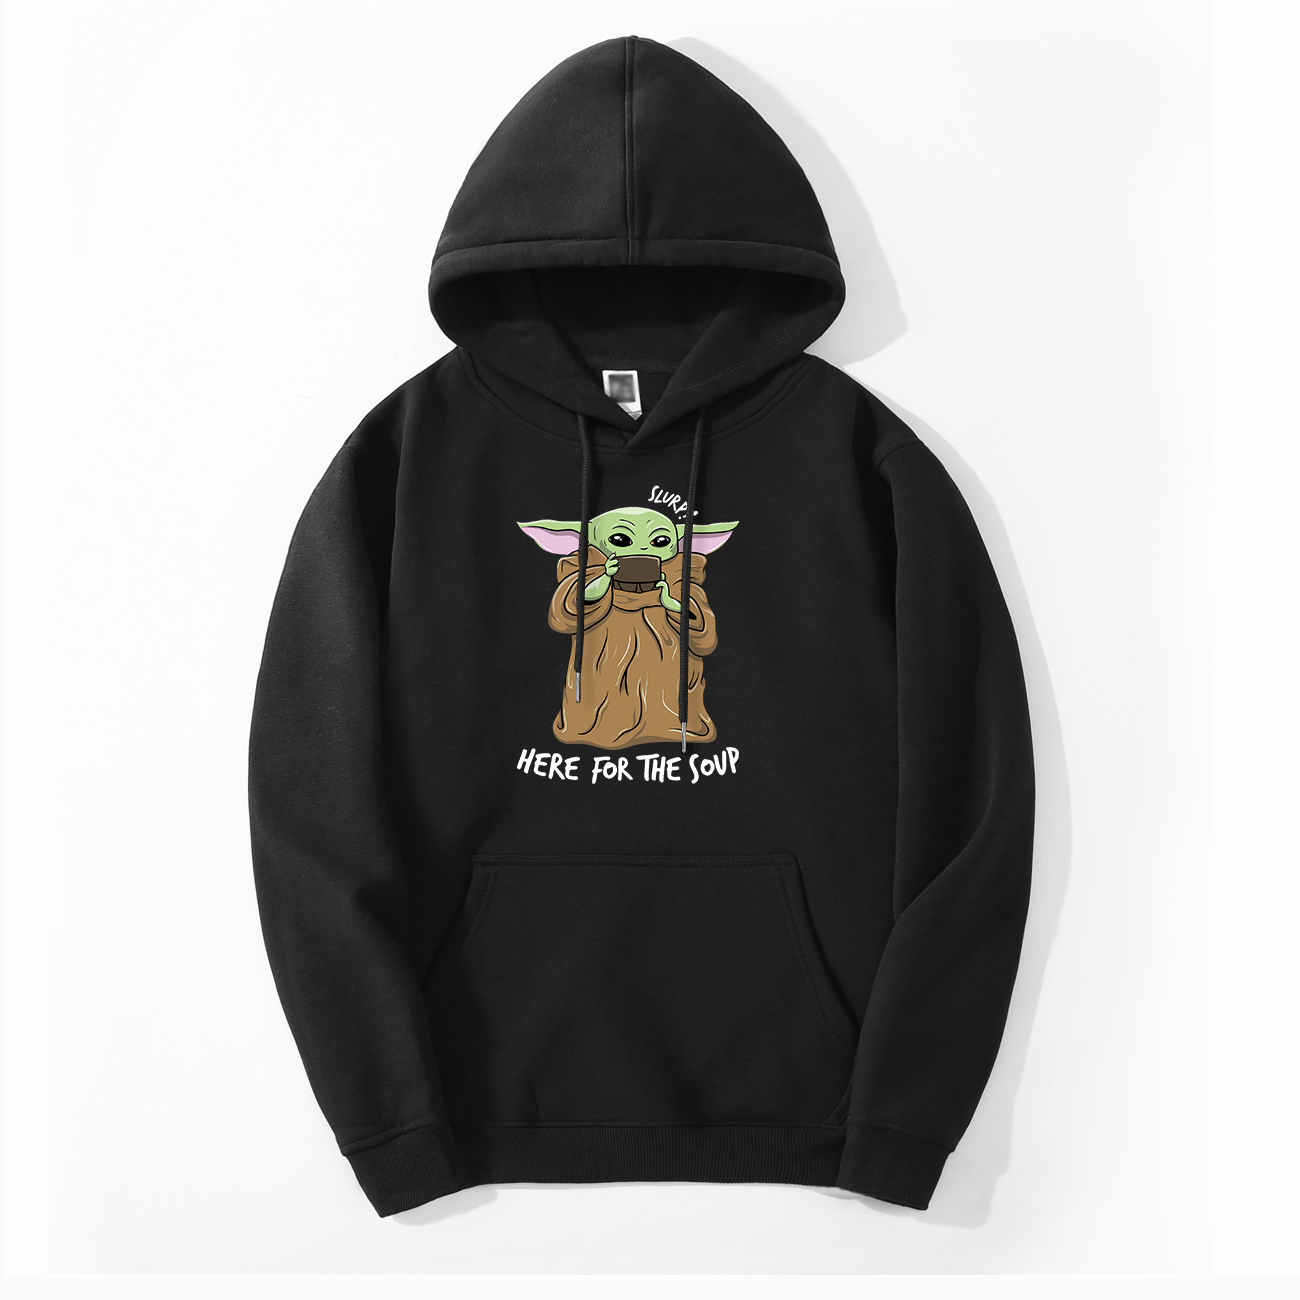 Cute Baby Yoda Hoodie Sweatshirts Fleece The Mandalorian Men Hoodies Autumn Winter Hooded Star War Streetwear Fashion Sportswear